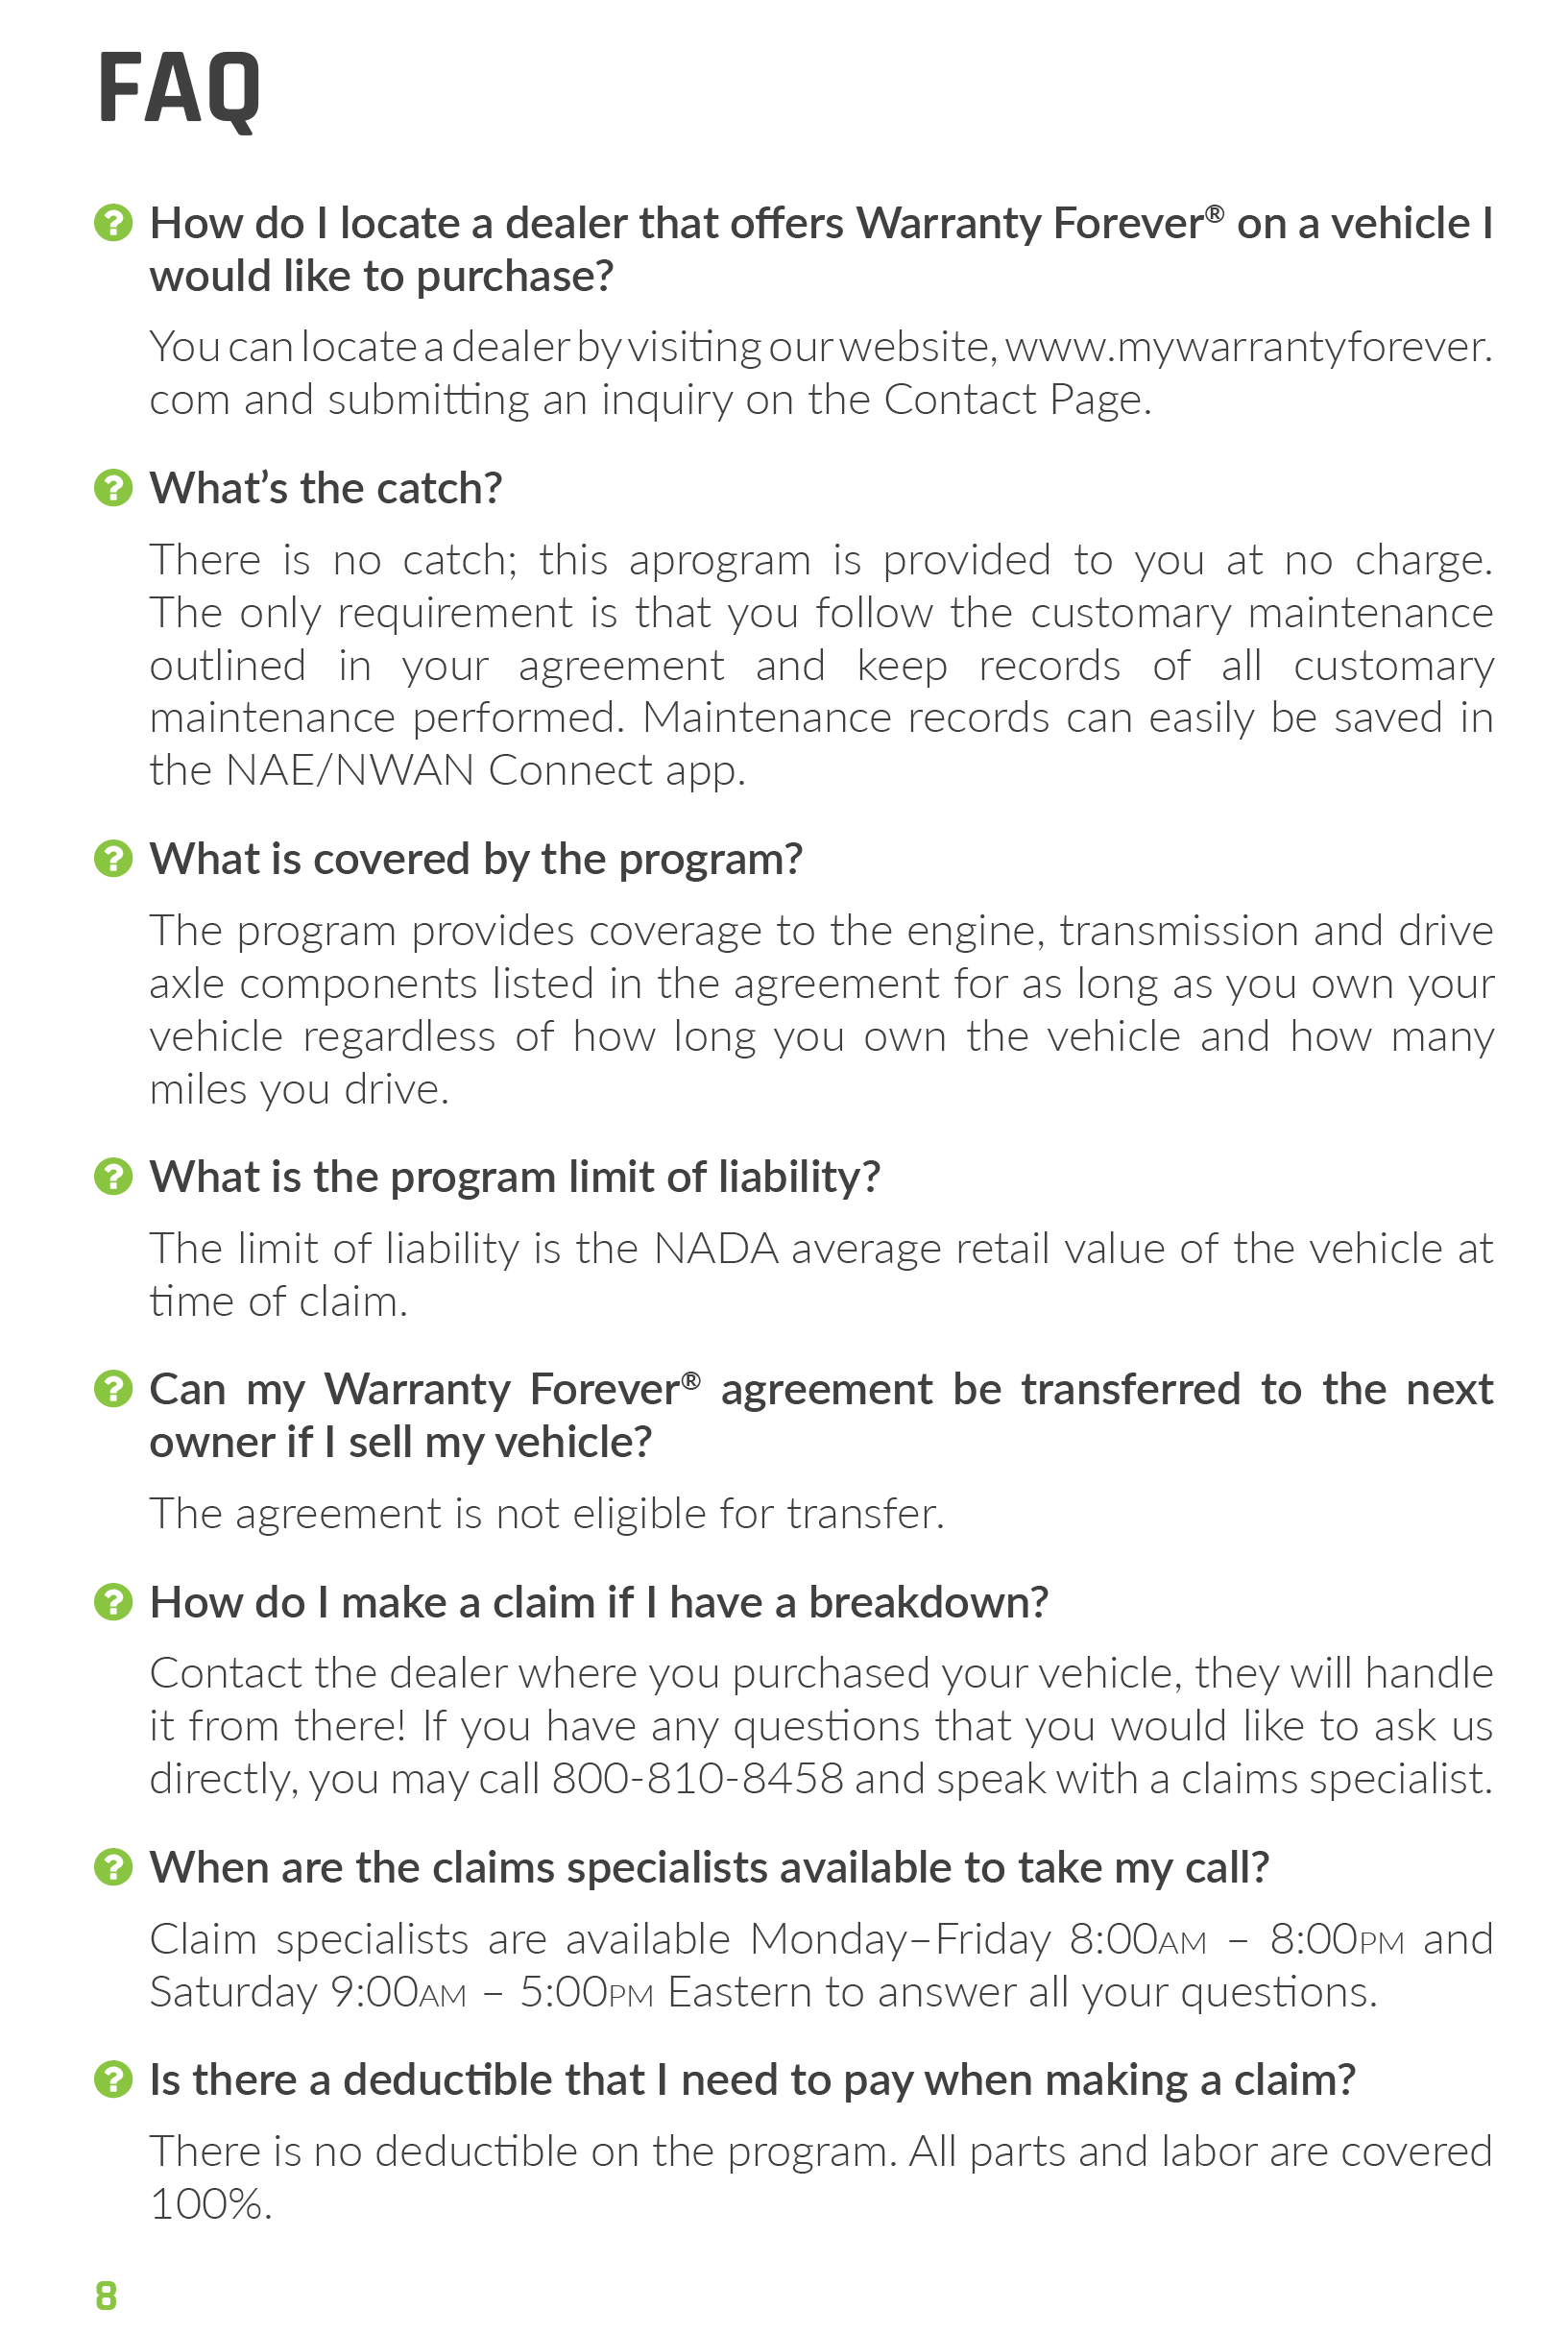 Jeep Dealers Cleveland >> Warranty Forever FAQs - Texas City Dealers - Houston ...